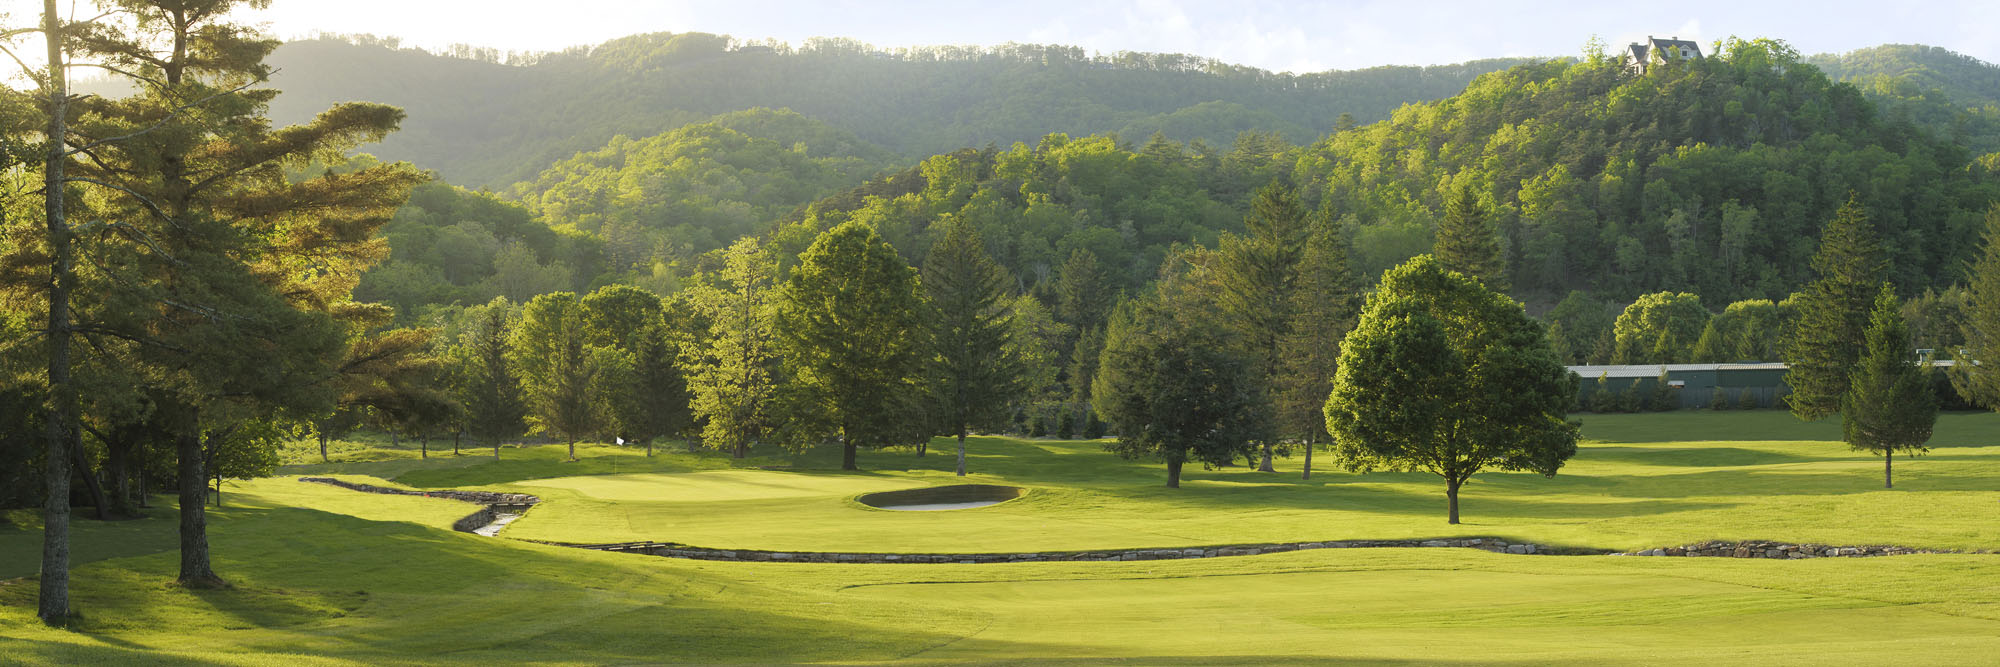 Golf Course Image - The Greenbrier Meadows Course No. 16